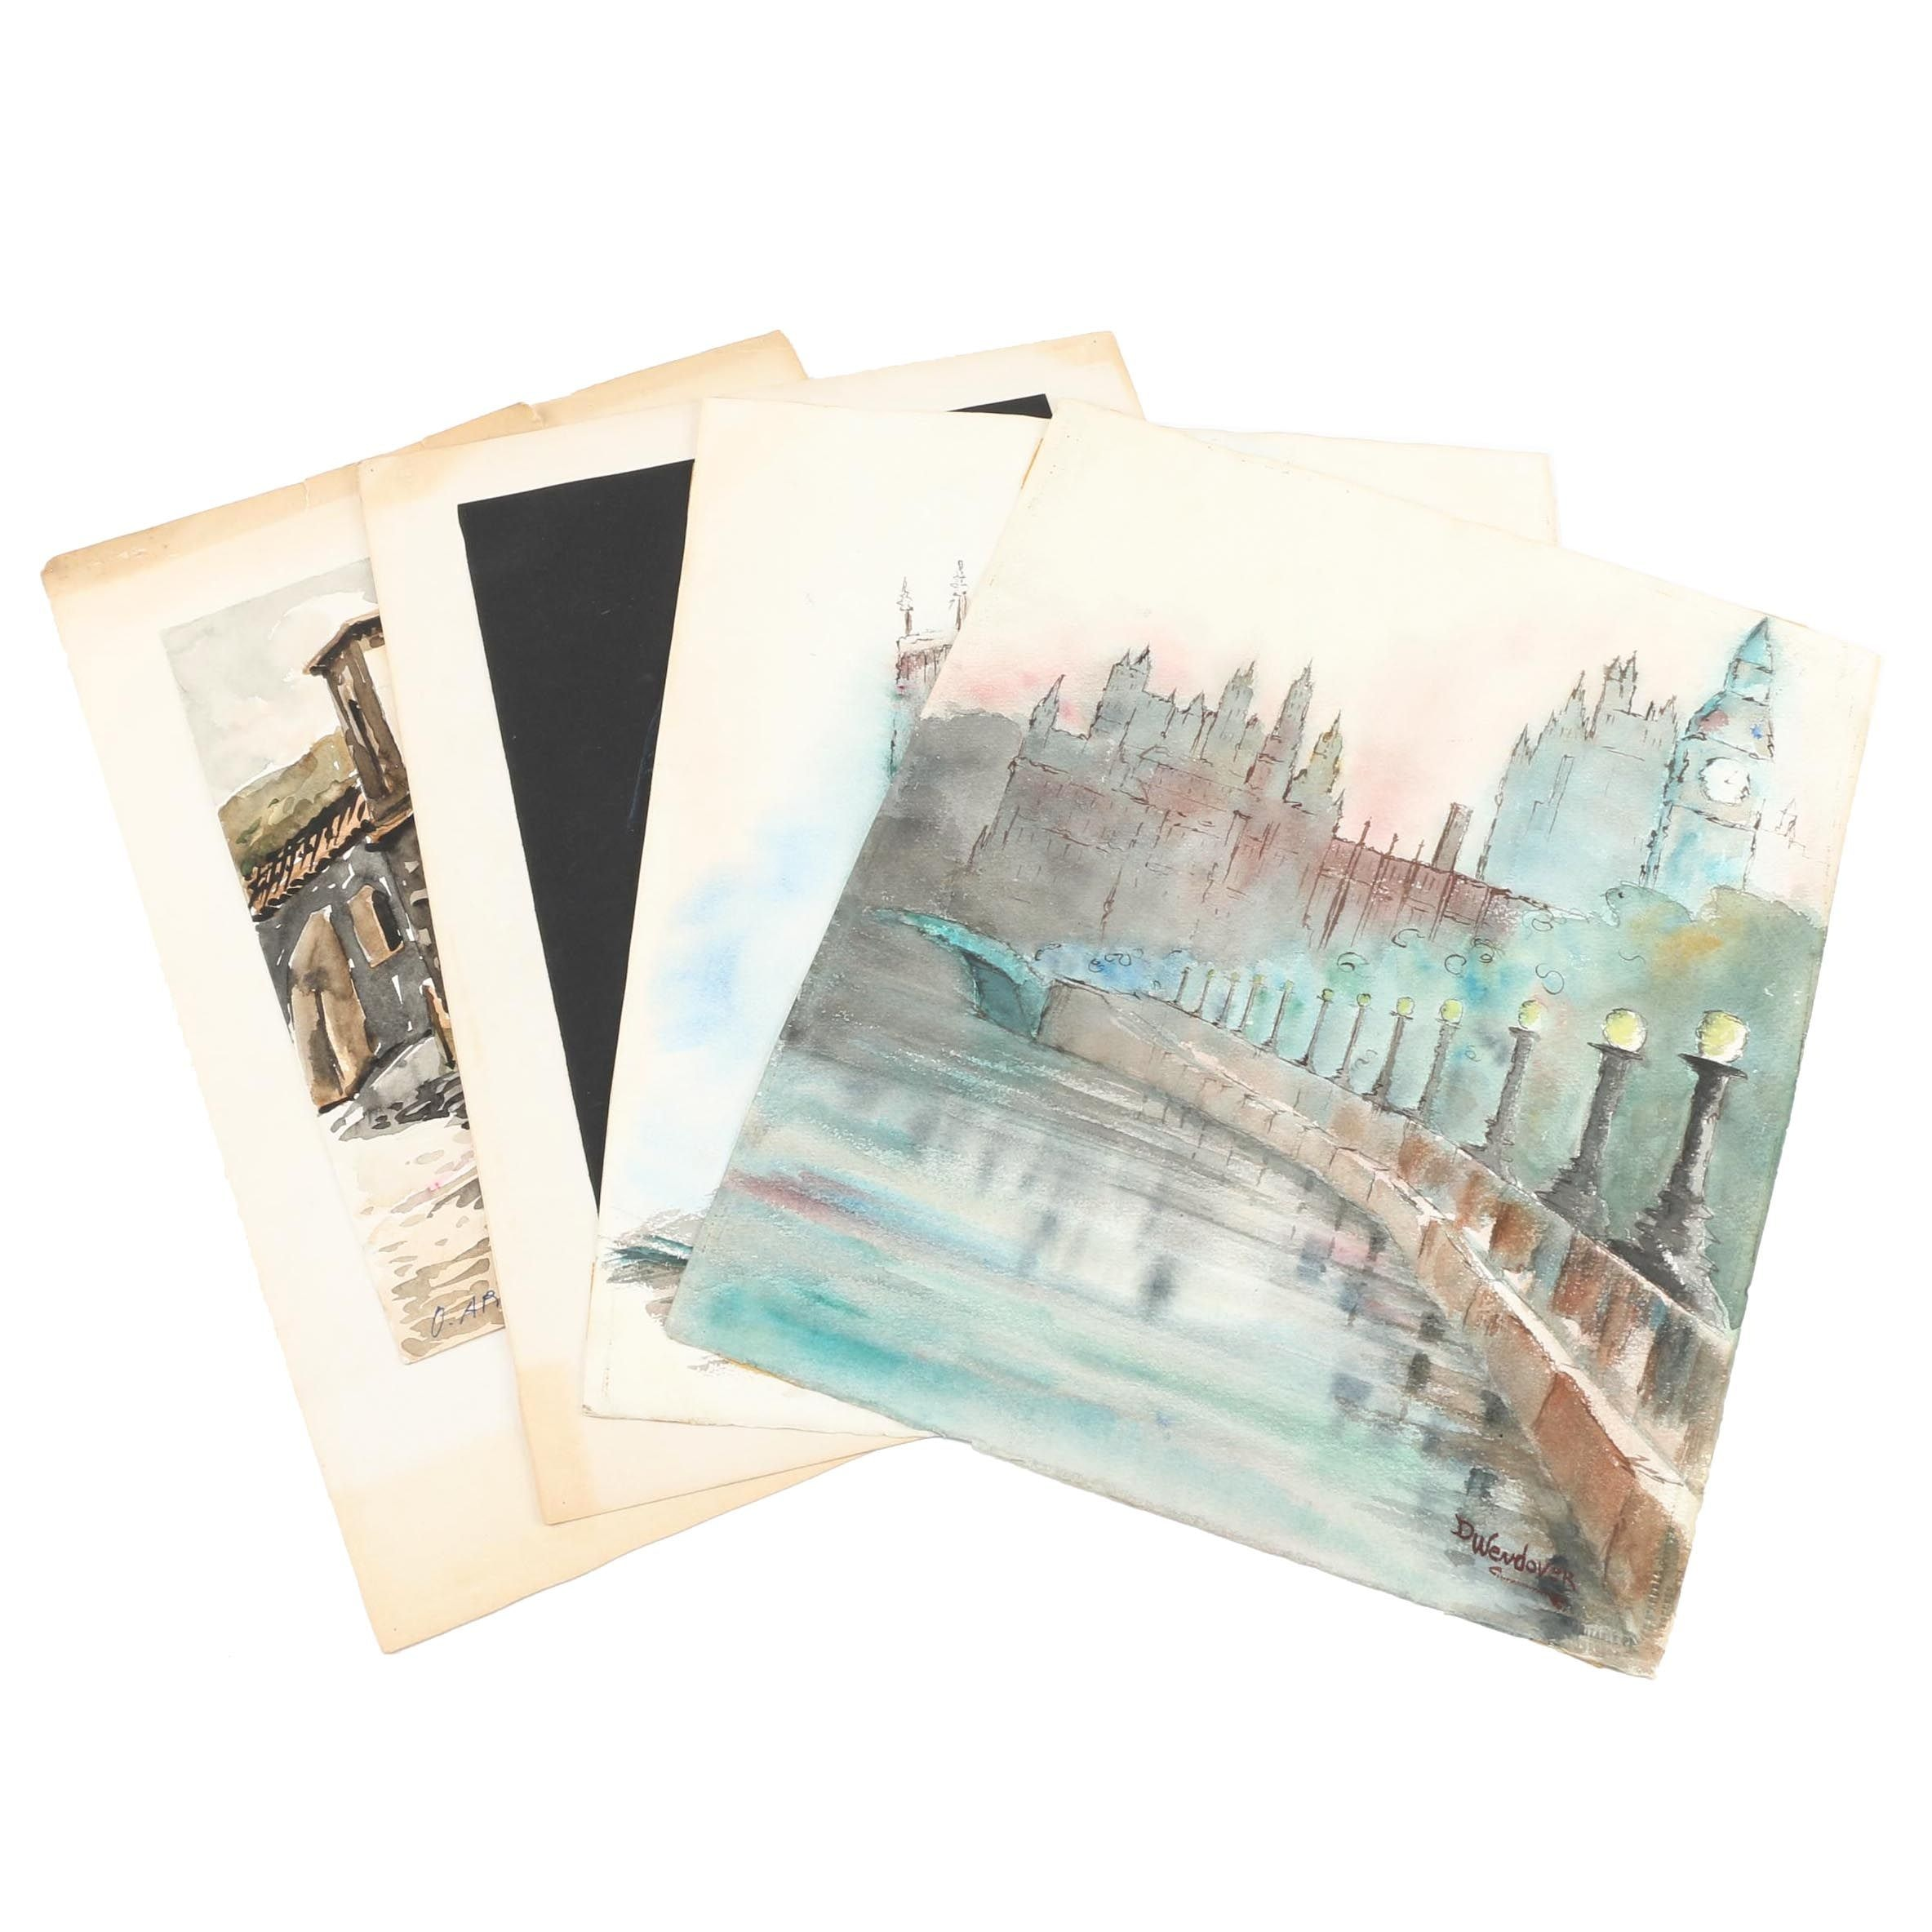 Watercolor Paintings and Drawings of Townscapes and Portraiture